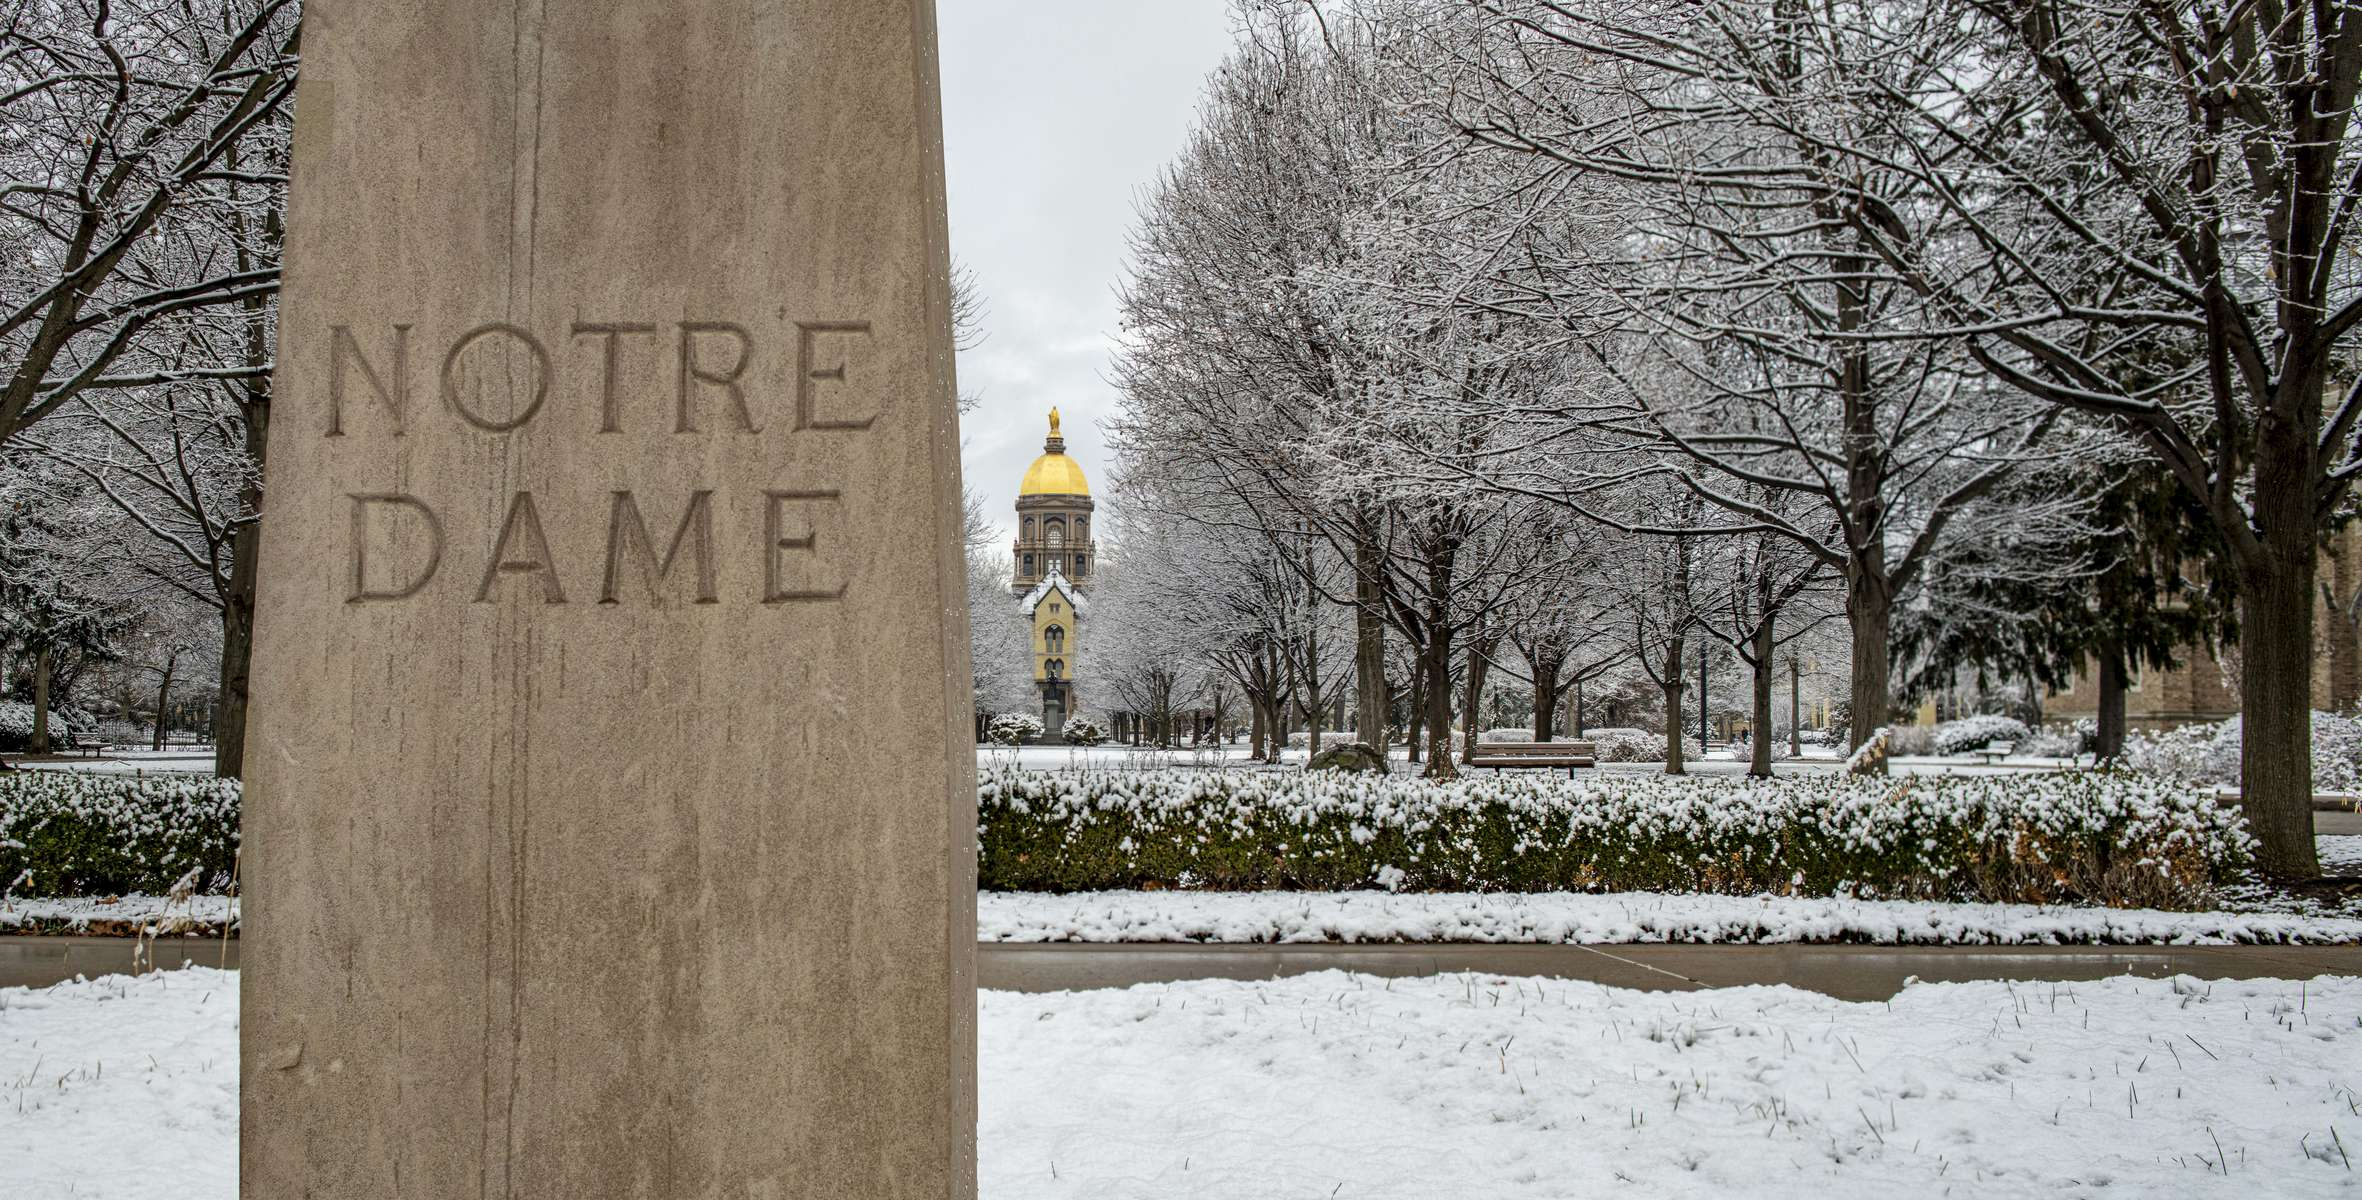 January 4,, 2020; The Main Building and Golden Dome after a snowfall.  (Photo by Barbara Johnston/University of Note Dame)